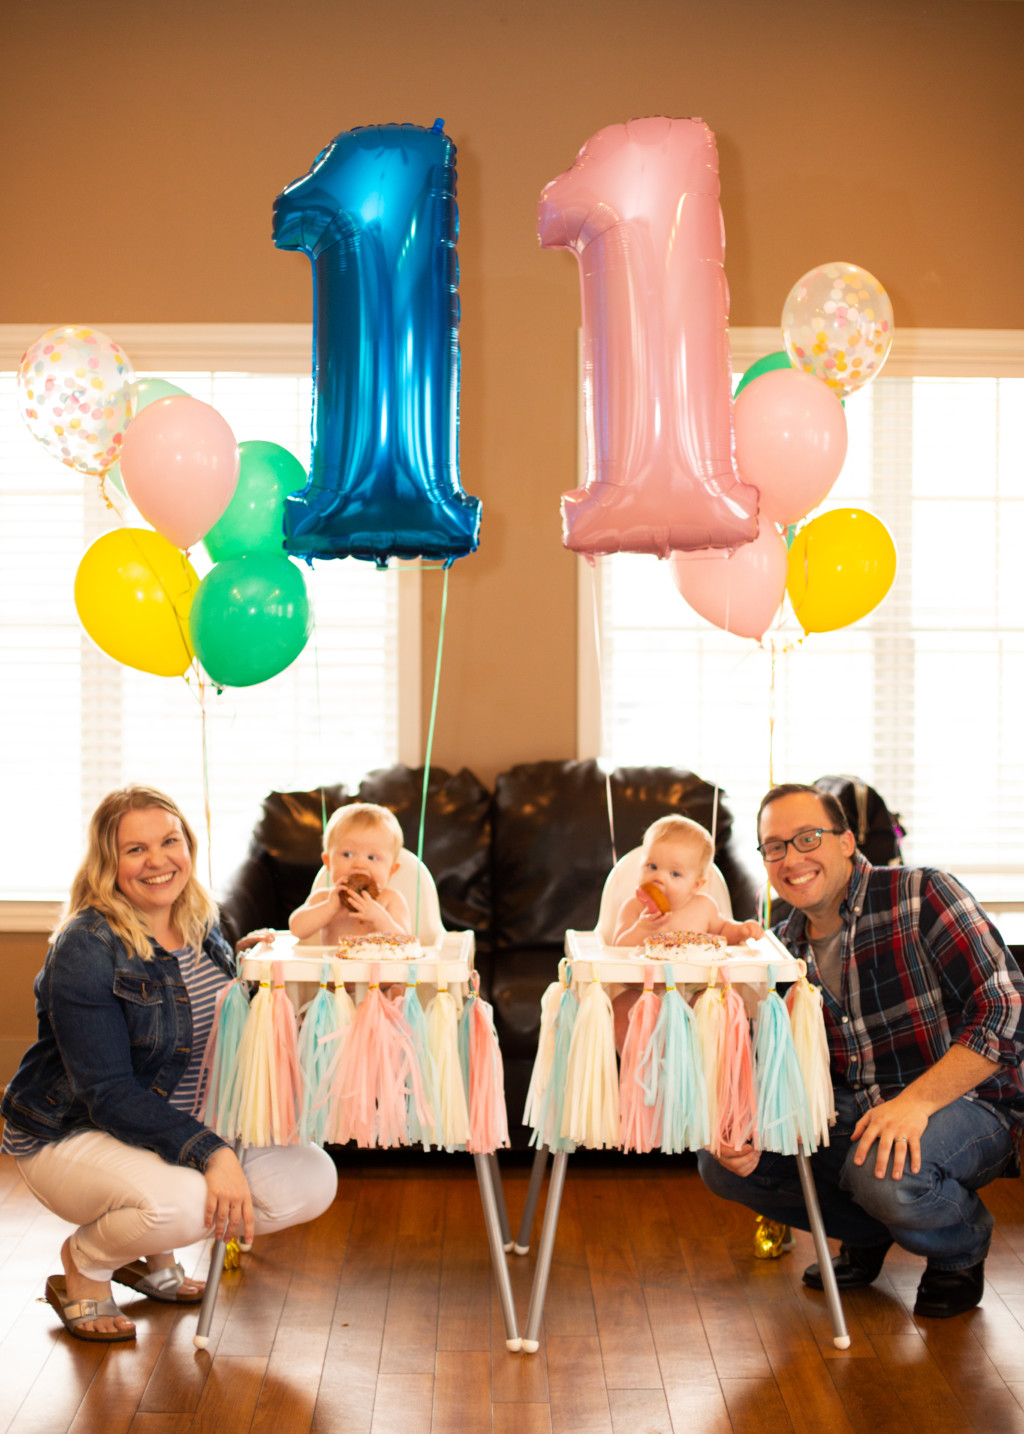 Lindsay Fischer with her husband and her IVF twins, Luke and Joey.